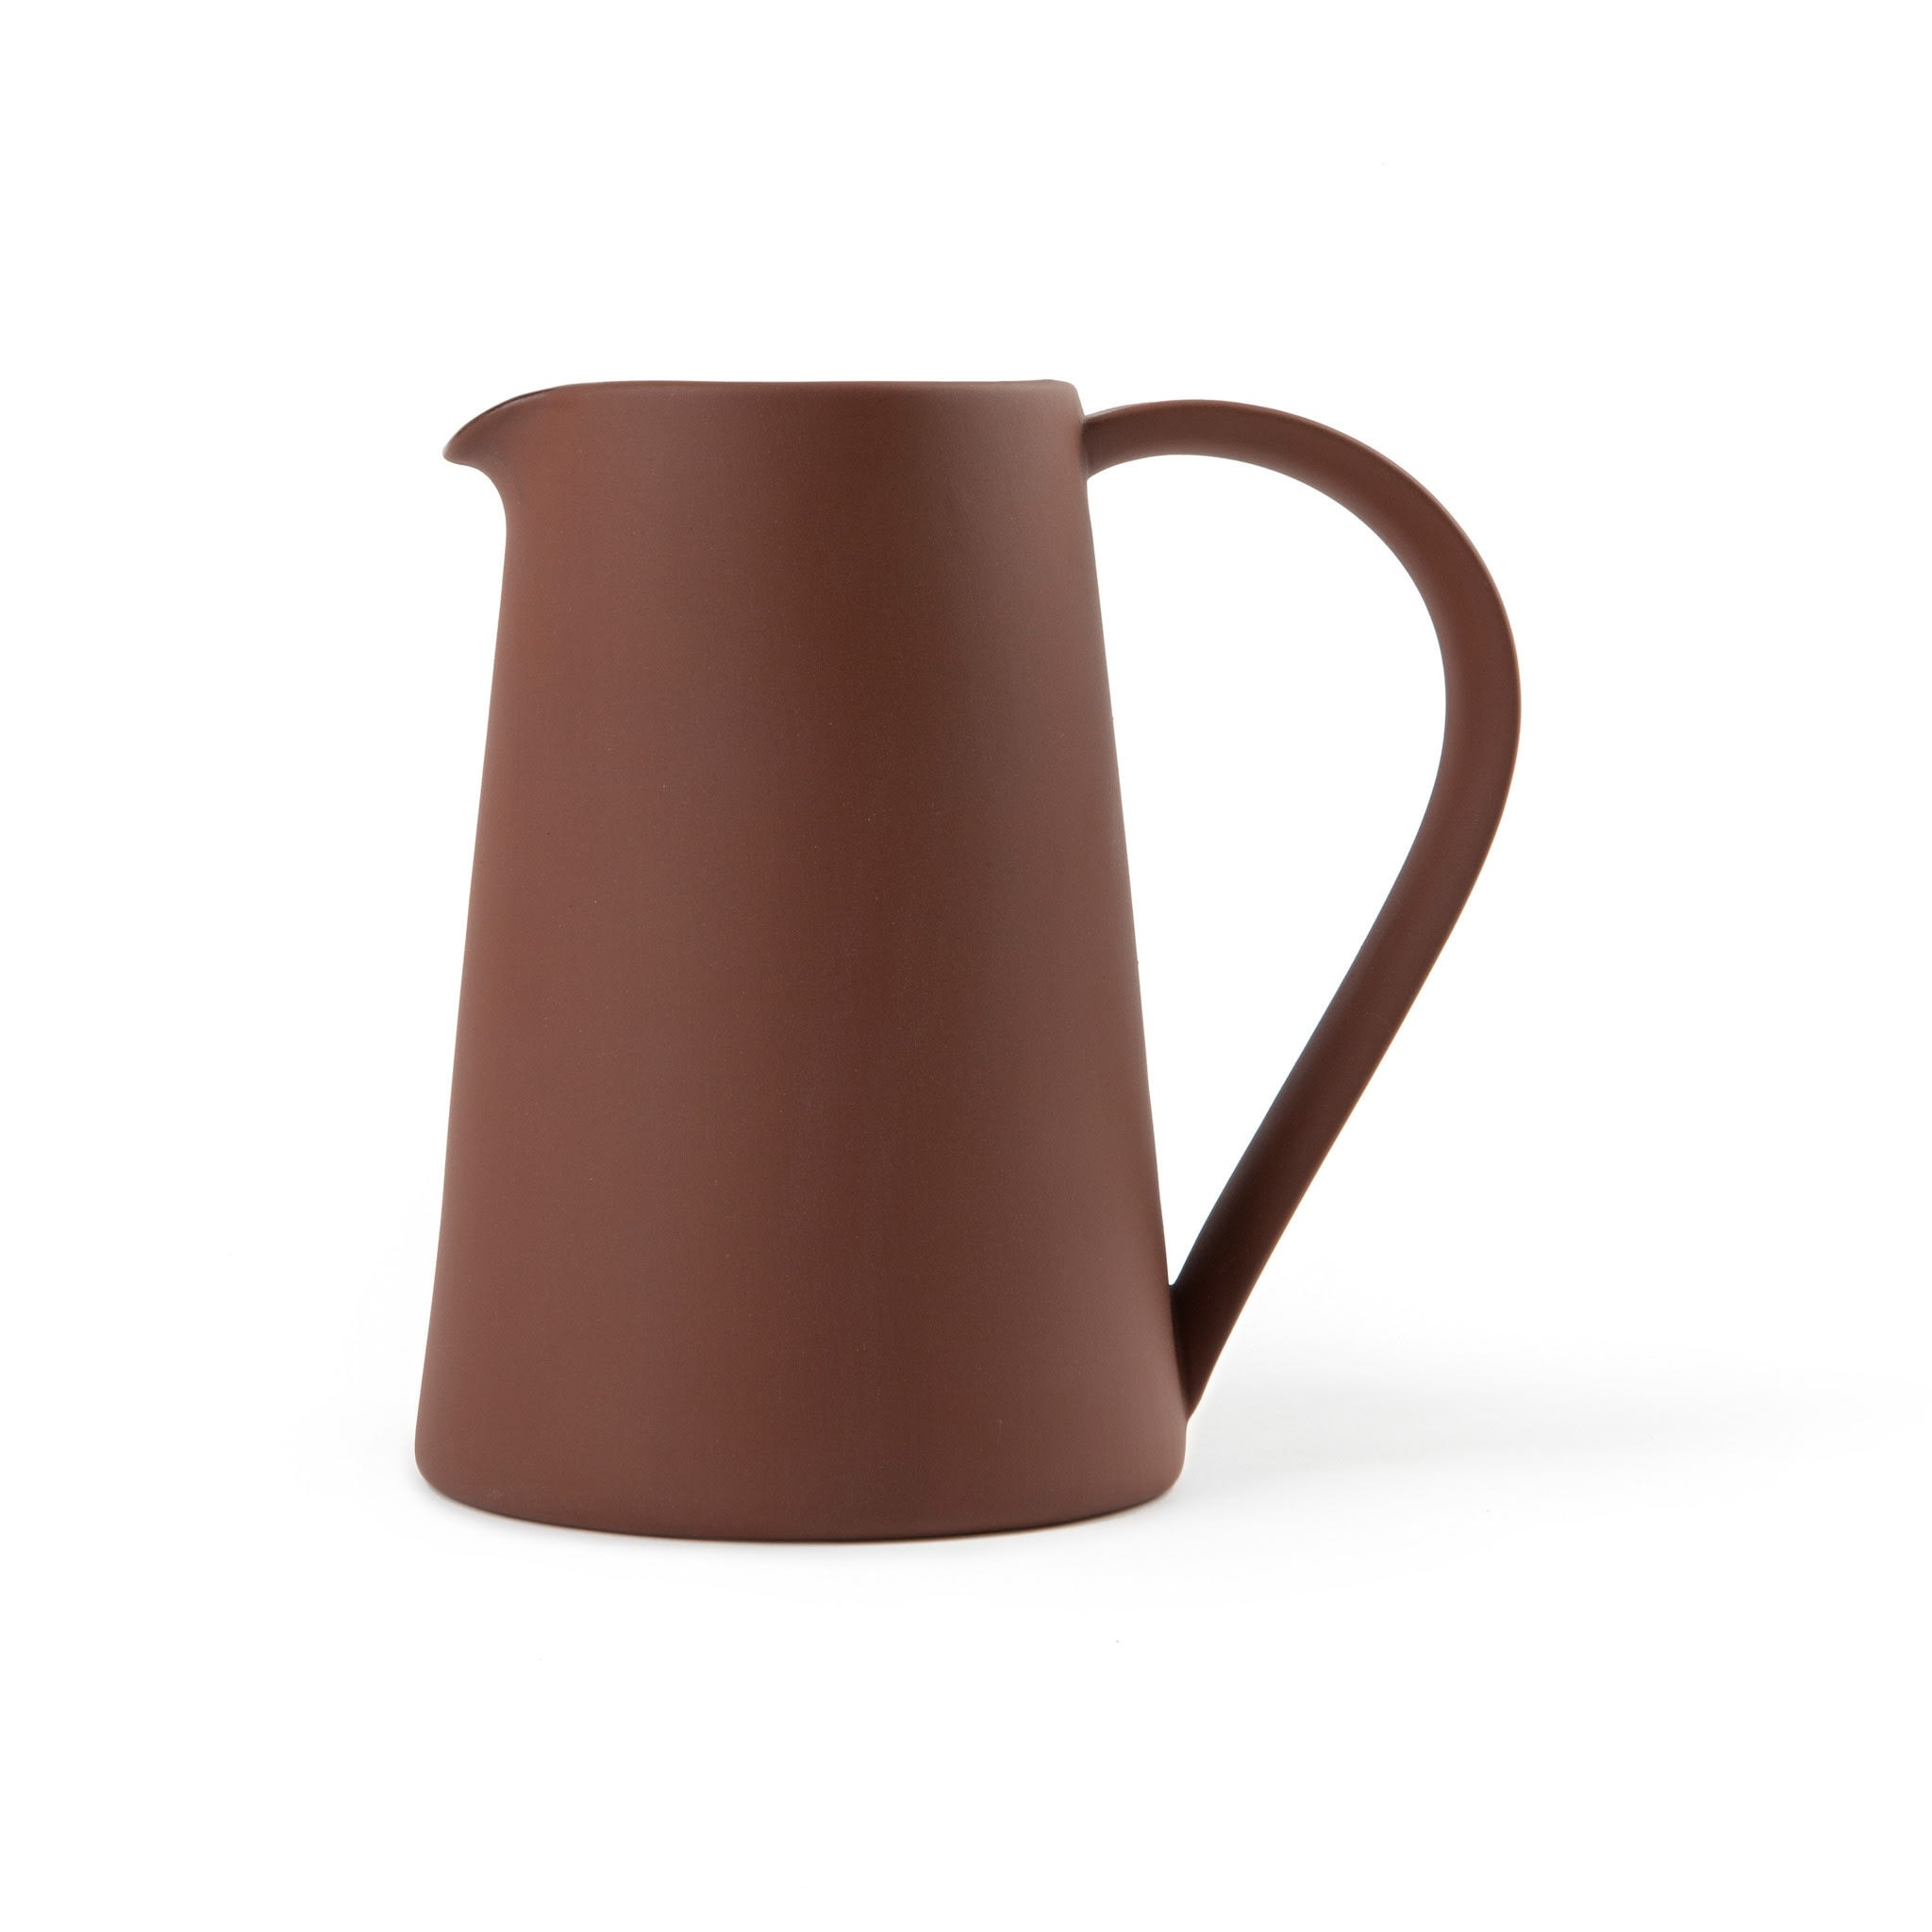 Another Country Terracotta Pitcher